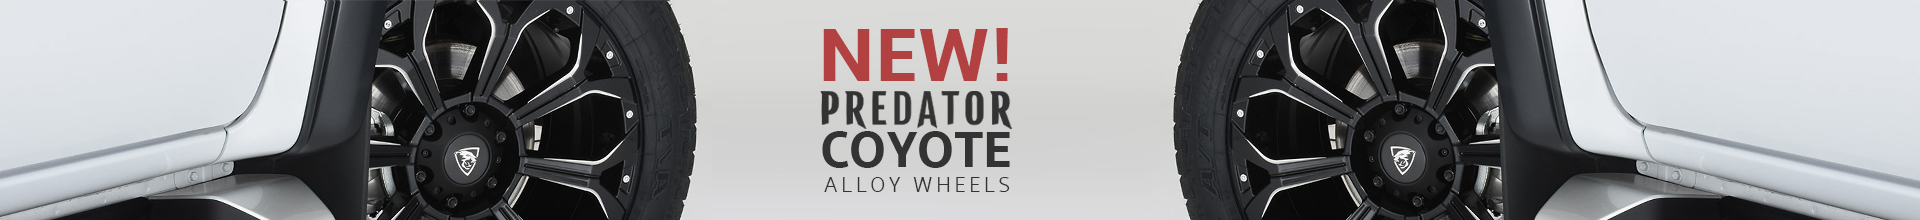 Brand New - Predator Coyote Alloy Wheels